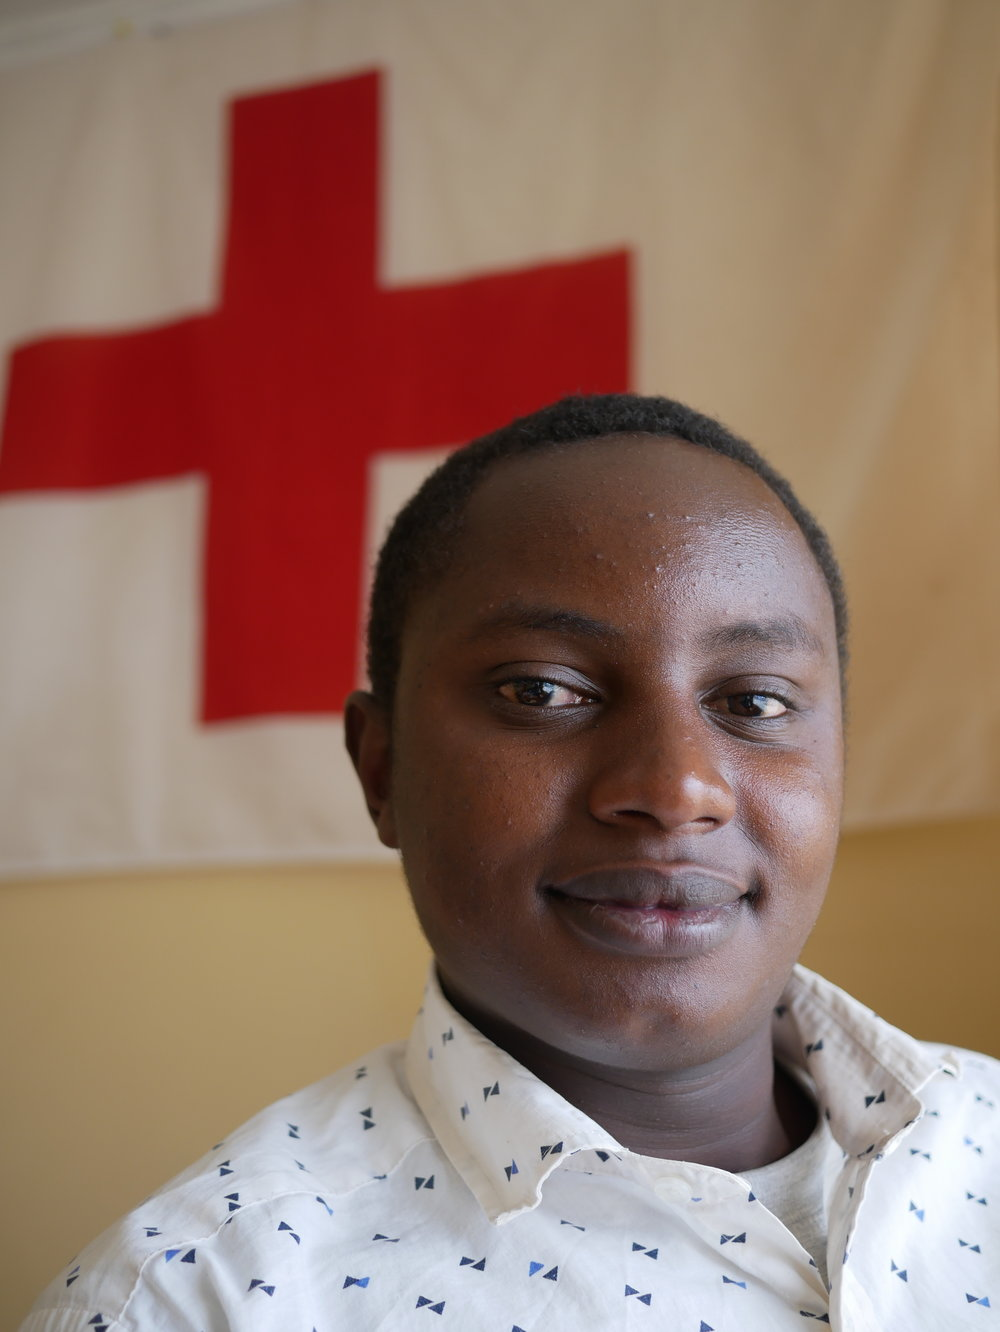 Alex - Alex is a volunteer in Nyahururu in Laikipia west. He studies community development, and is looking forward to promoting youth participation within Red Cross in Laikipia and within KRCS.- Being in the YDEP team is a good opportunity to increase my leadership skills.